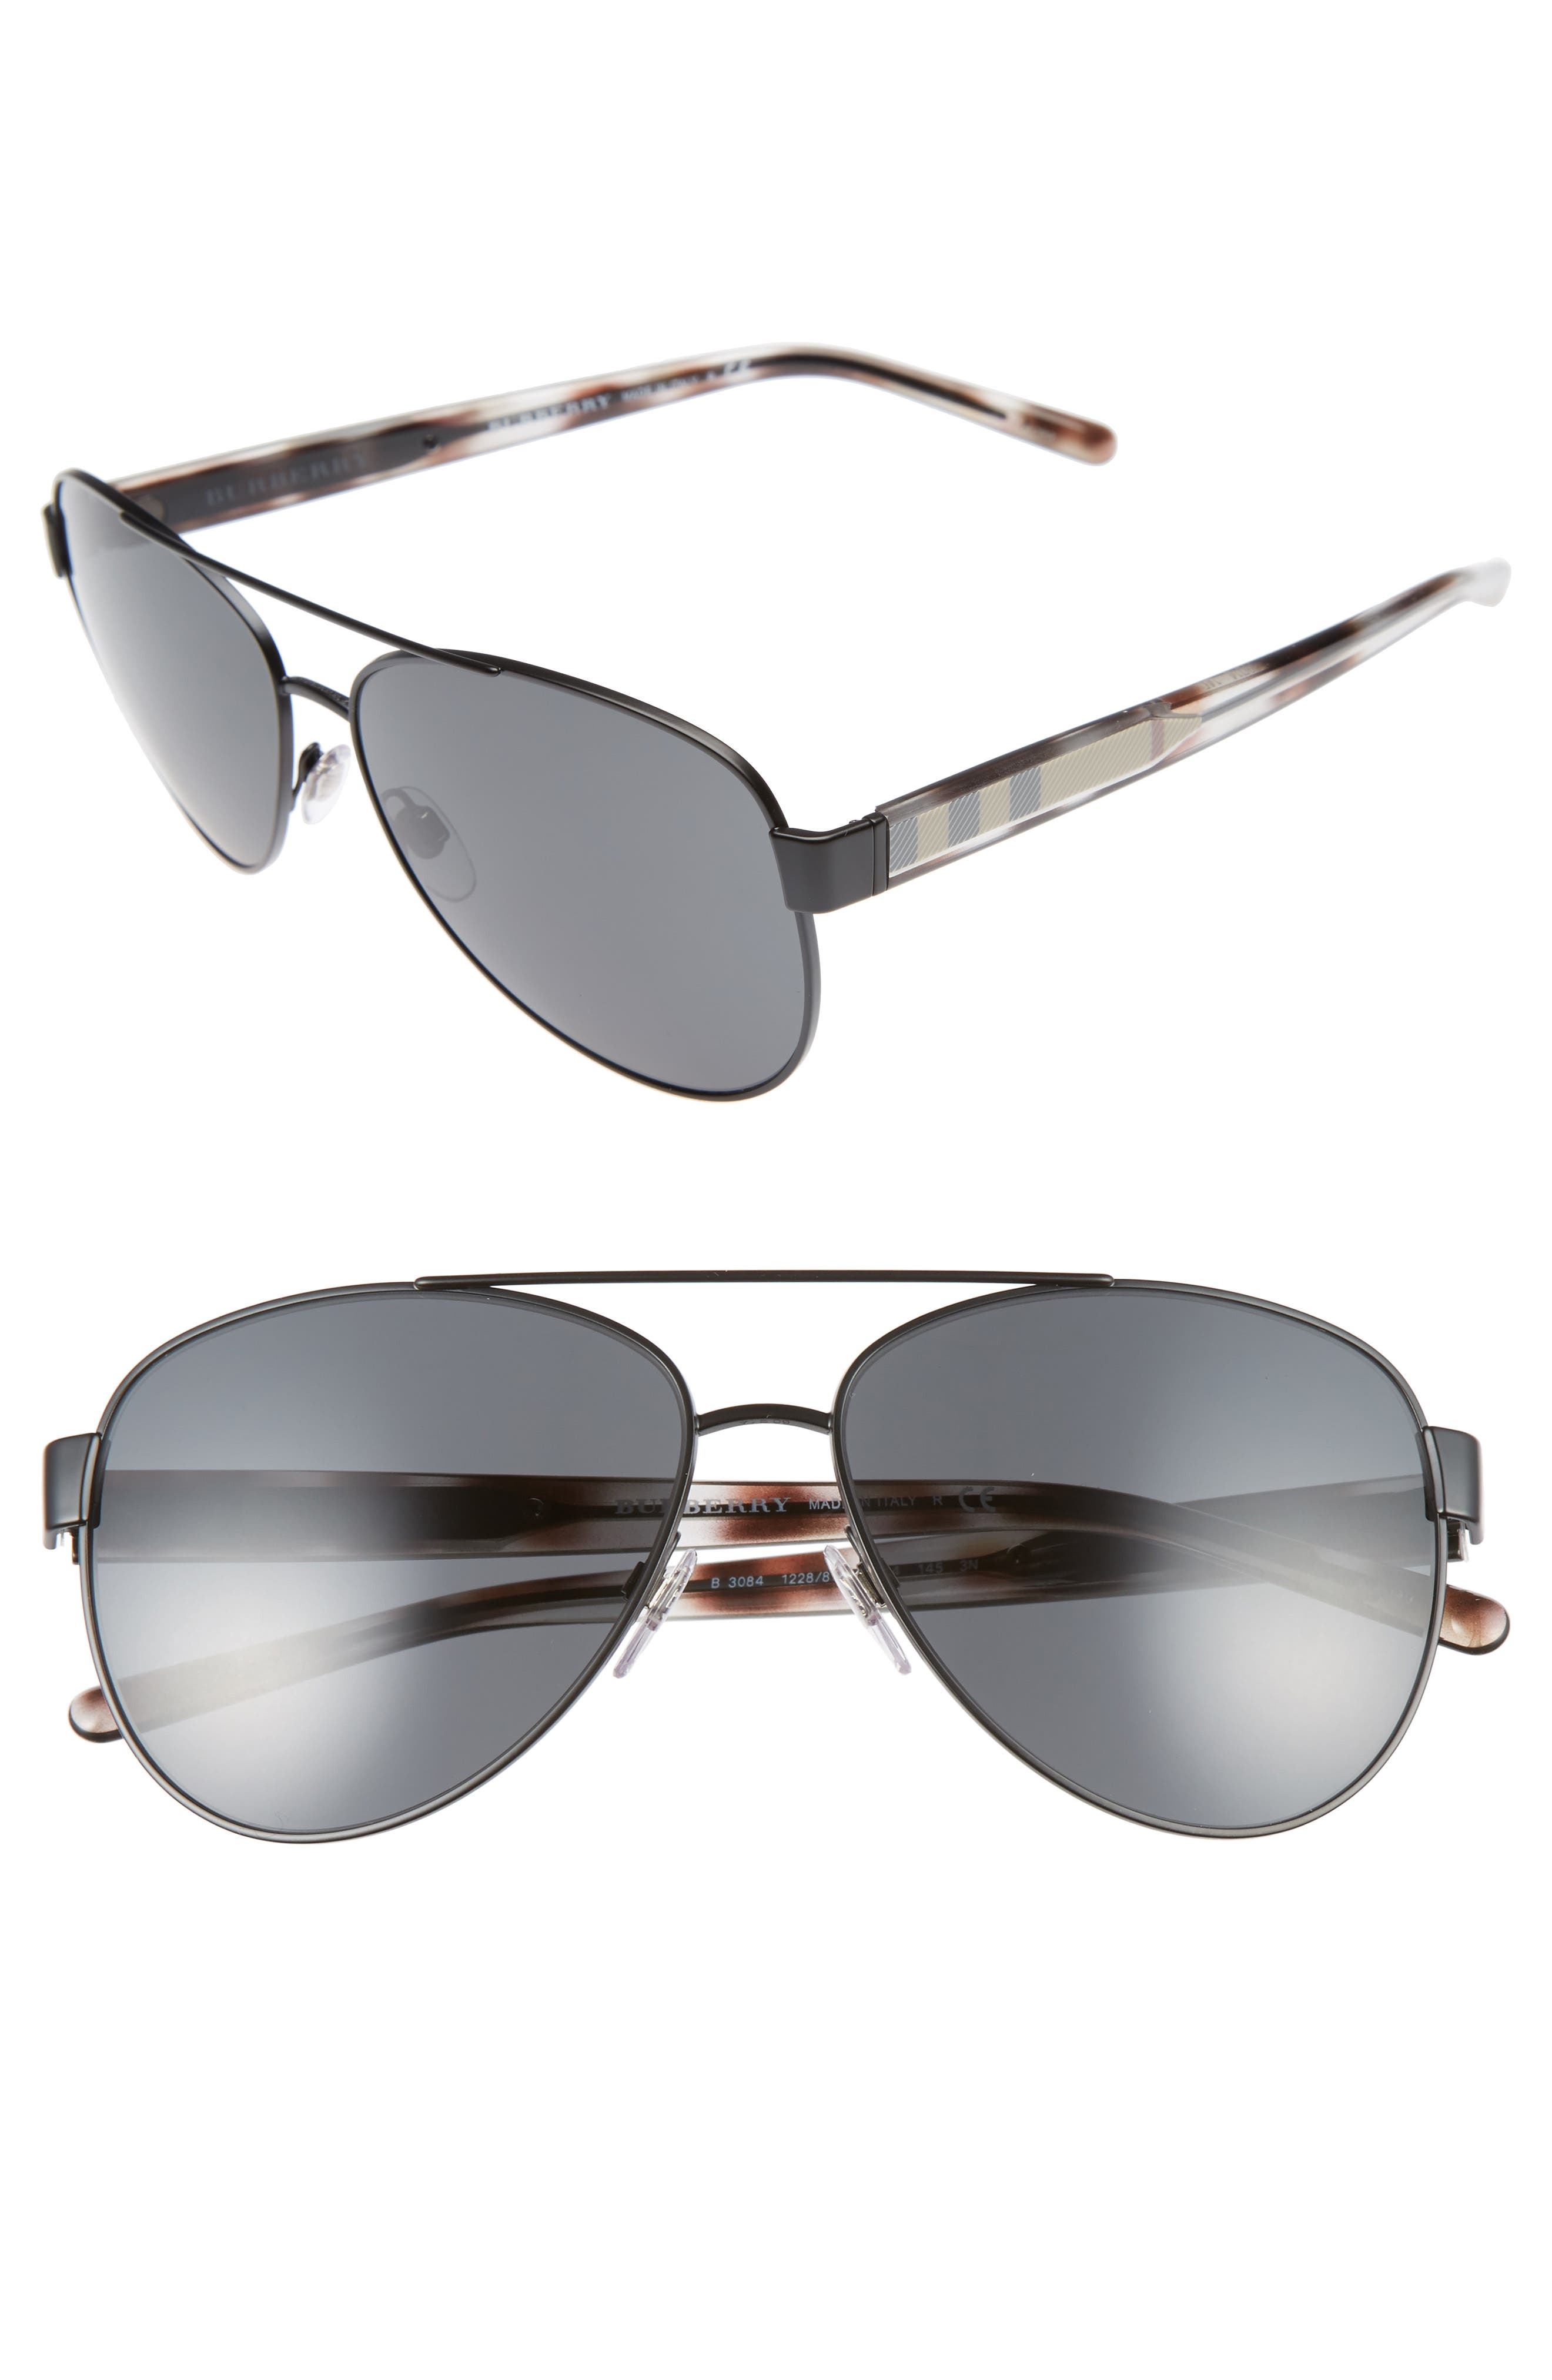 Burberry 60mm Aviator Sunglasses